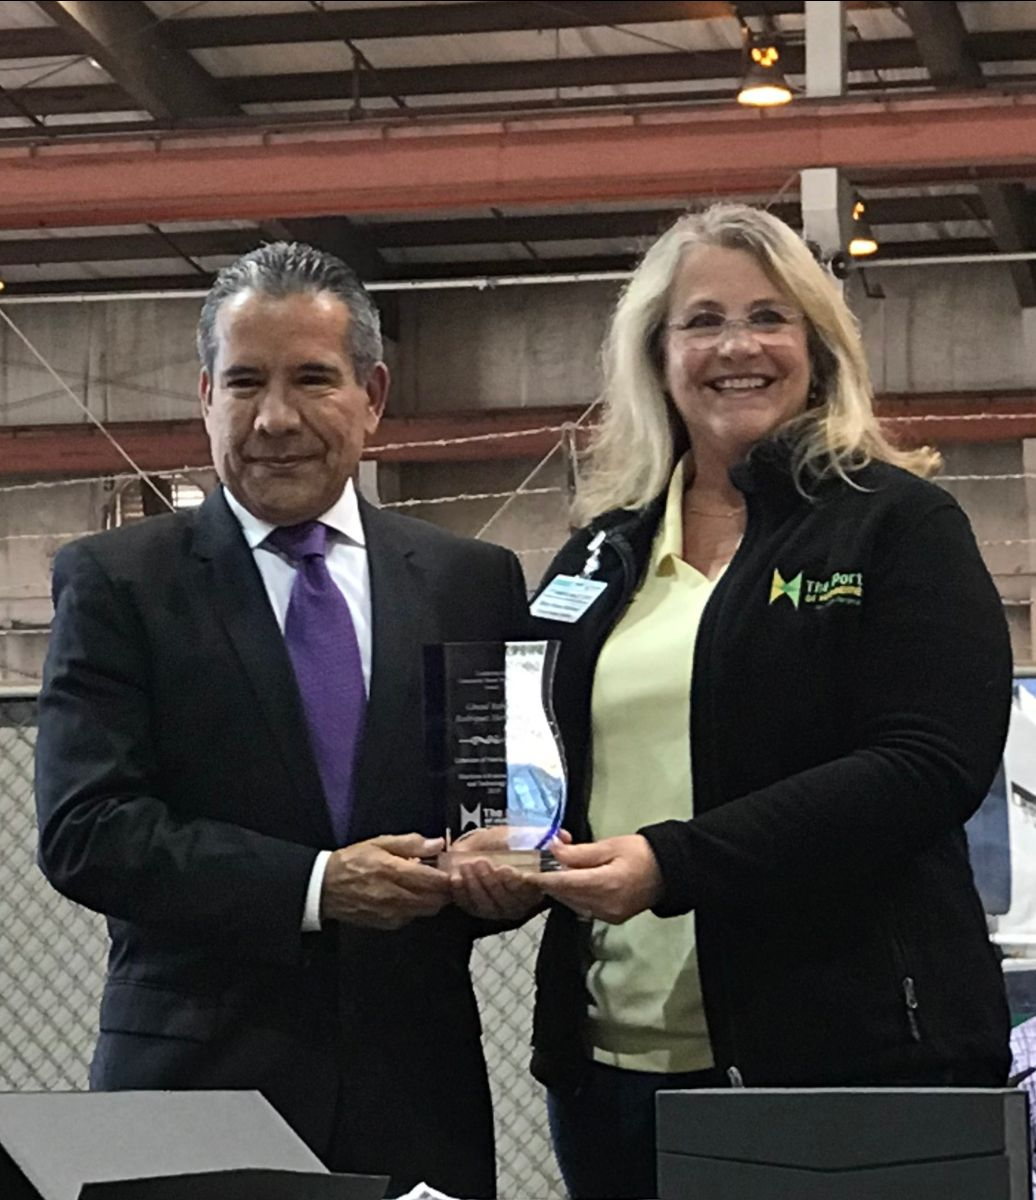 Oxnard Harbor District Commissioner Mary Anne Rooney presents the Leadership in Community Based Technology Award to Cónsul Roberto Rodríguez Hernández of the Consulate of Mexico in Oxnard